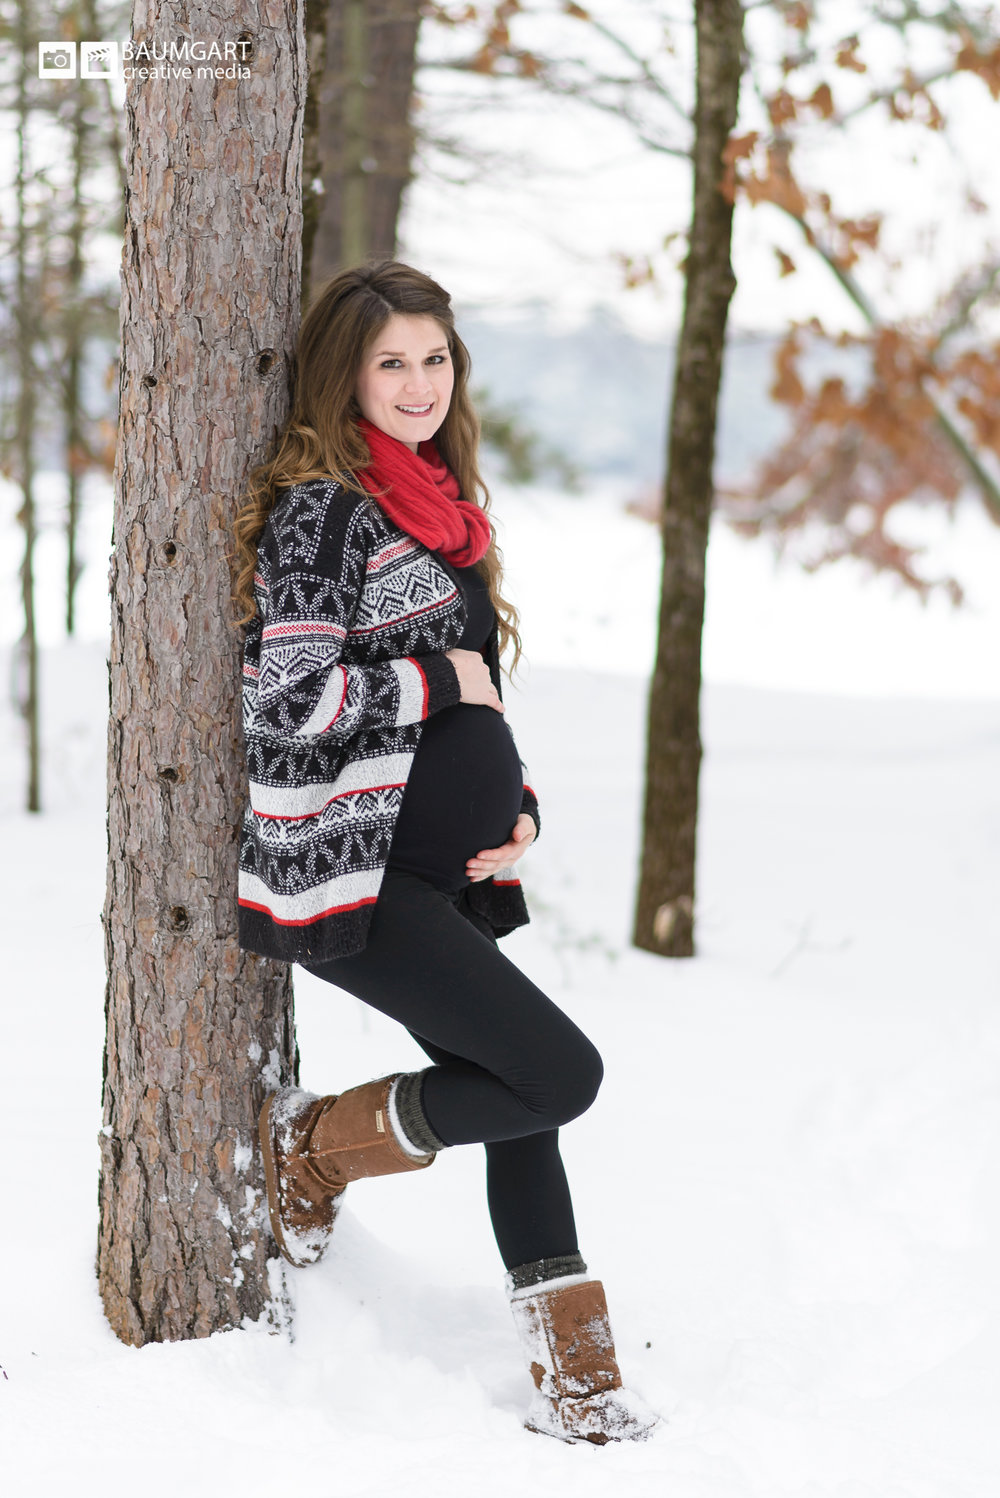 MA_Winter_Maternity_Portrait_Photography_Jeff_Baumgart_Creative_Media